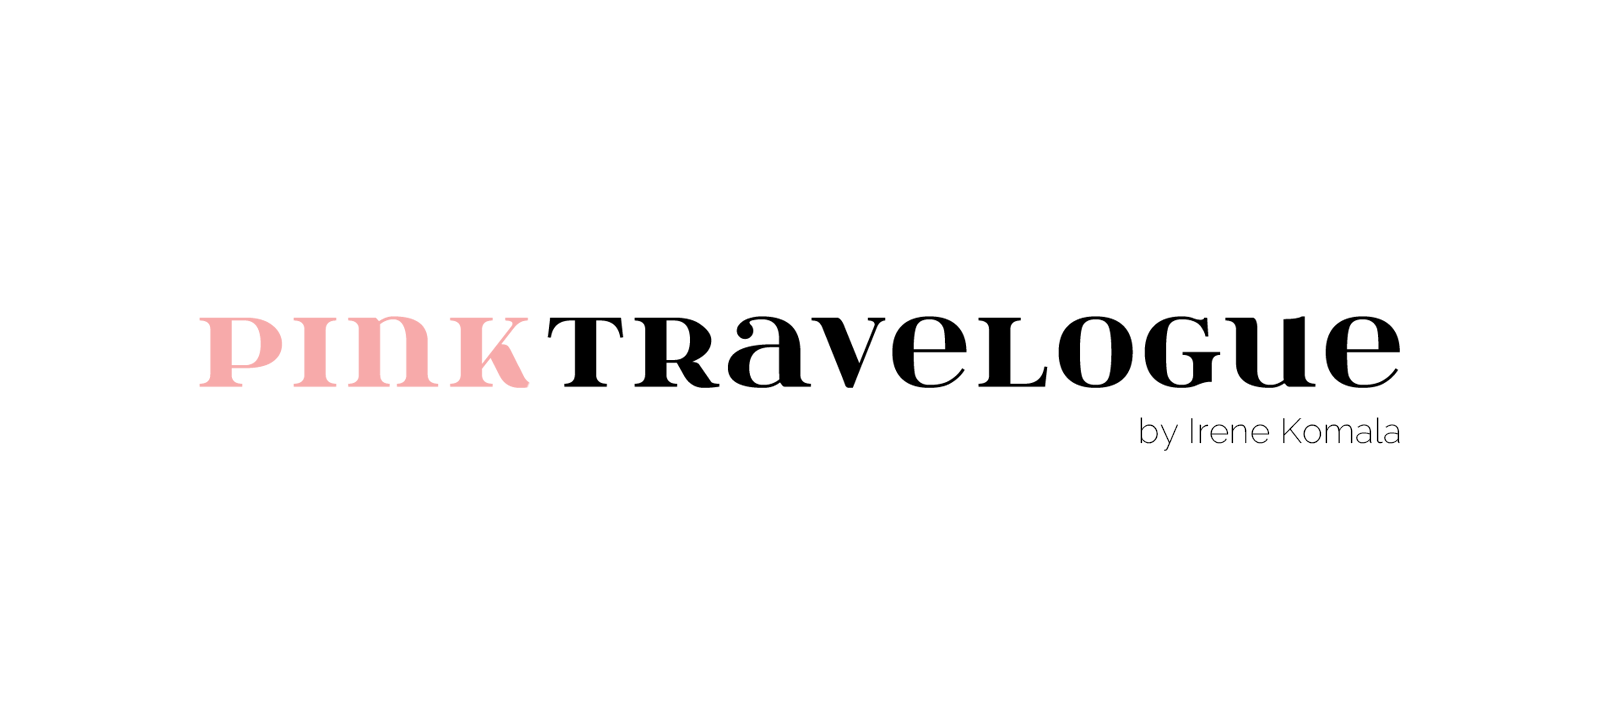 Pink Travelogue